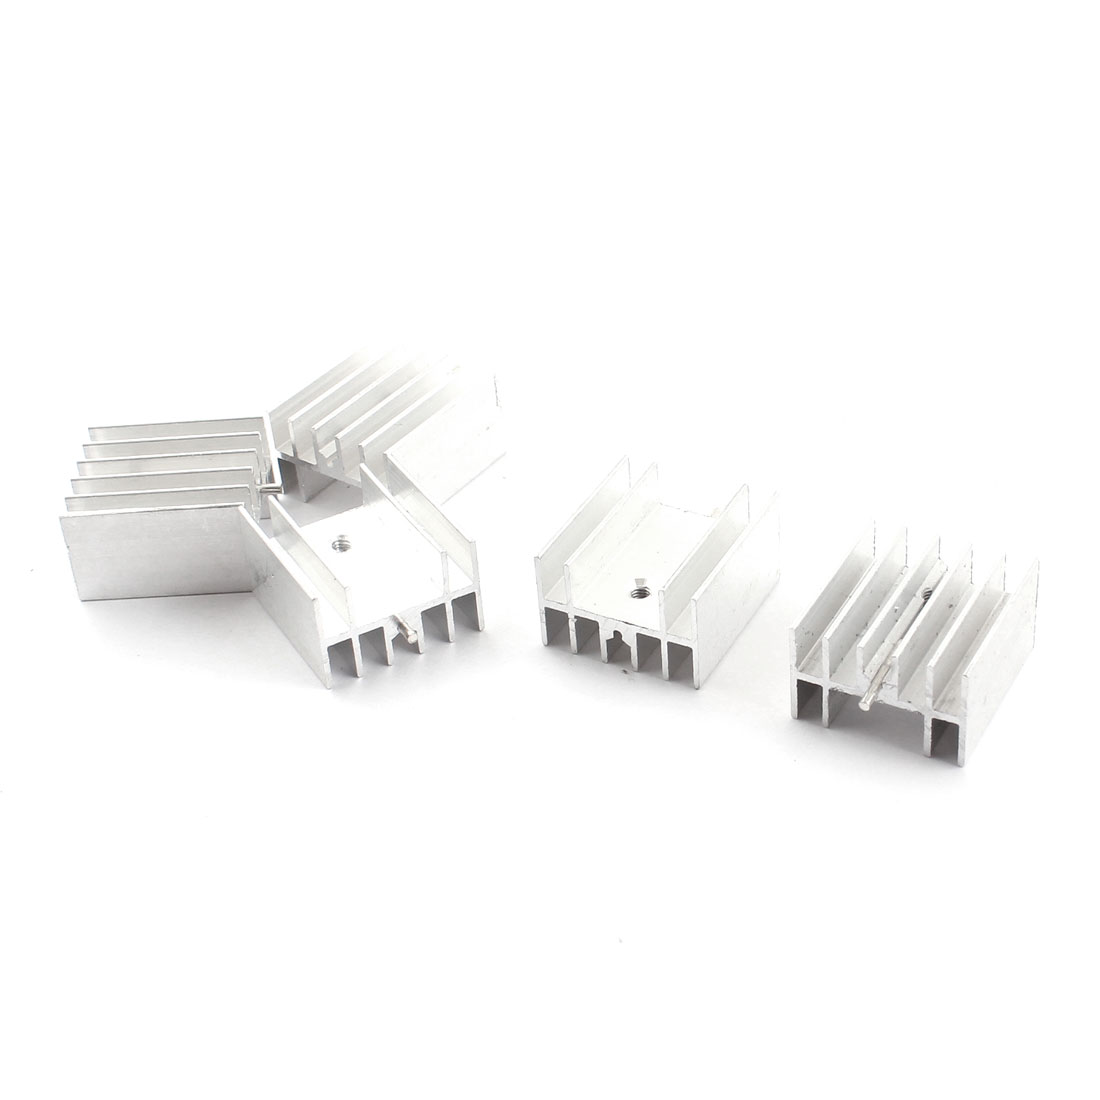 5 Pcs Spare Parts 23mm x 16mm x 25mm Aluminium Radiator Cooler Heatsink Heat Sink Cooling Fin w Needle for PCB Board